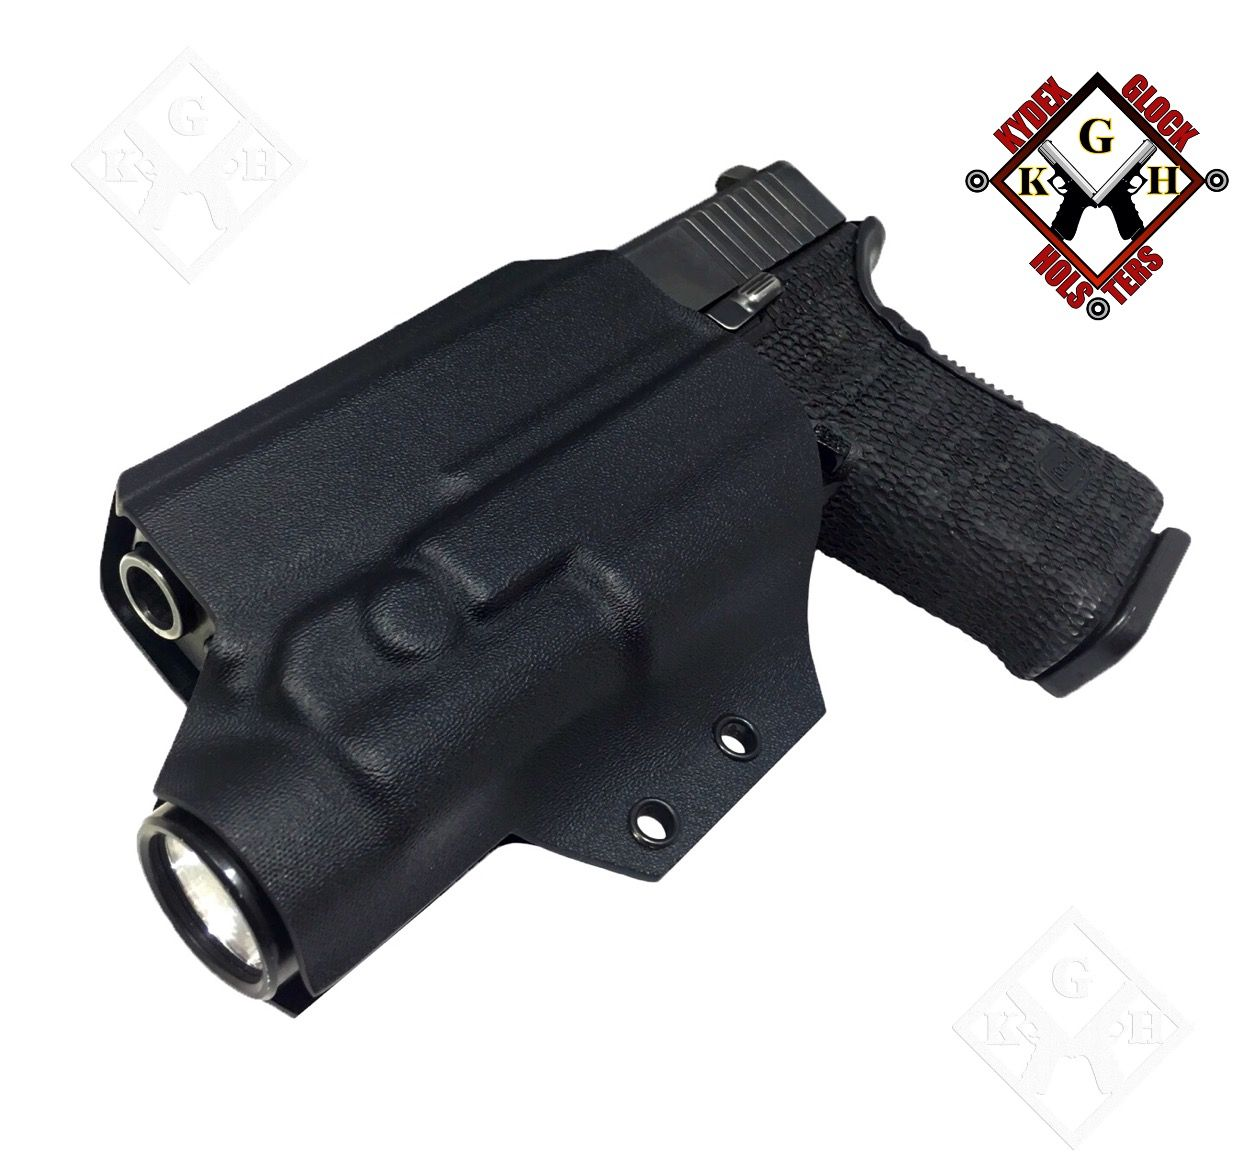 Safariland Glock 20, 21 with ITI M3, TLR-1, Insight XTI Procyon 6378 ALS  Concealment Paddle Holster (STX Black Finish), http://www.amazon.com/dp/B0…